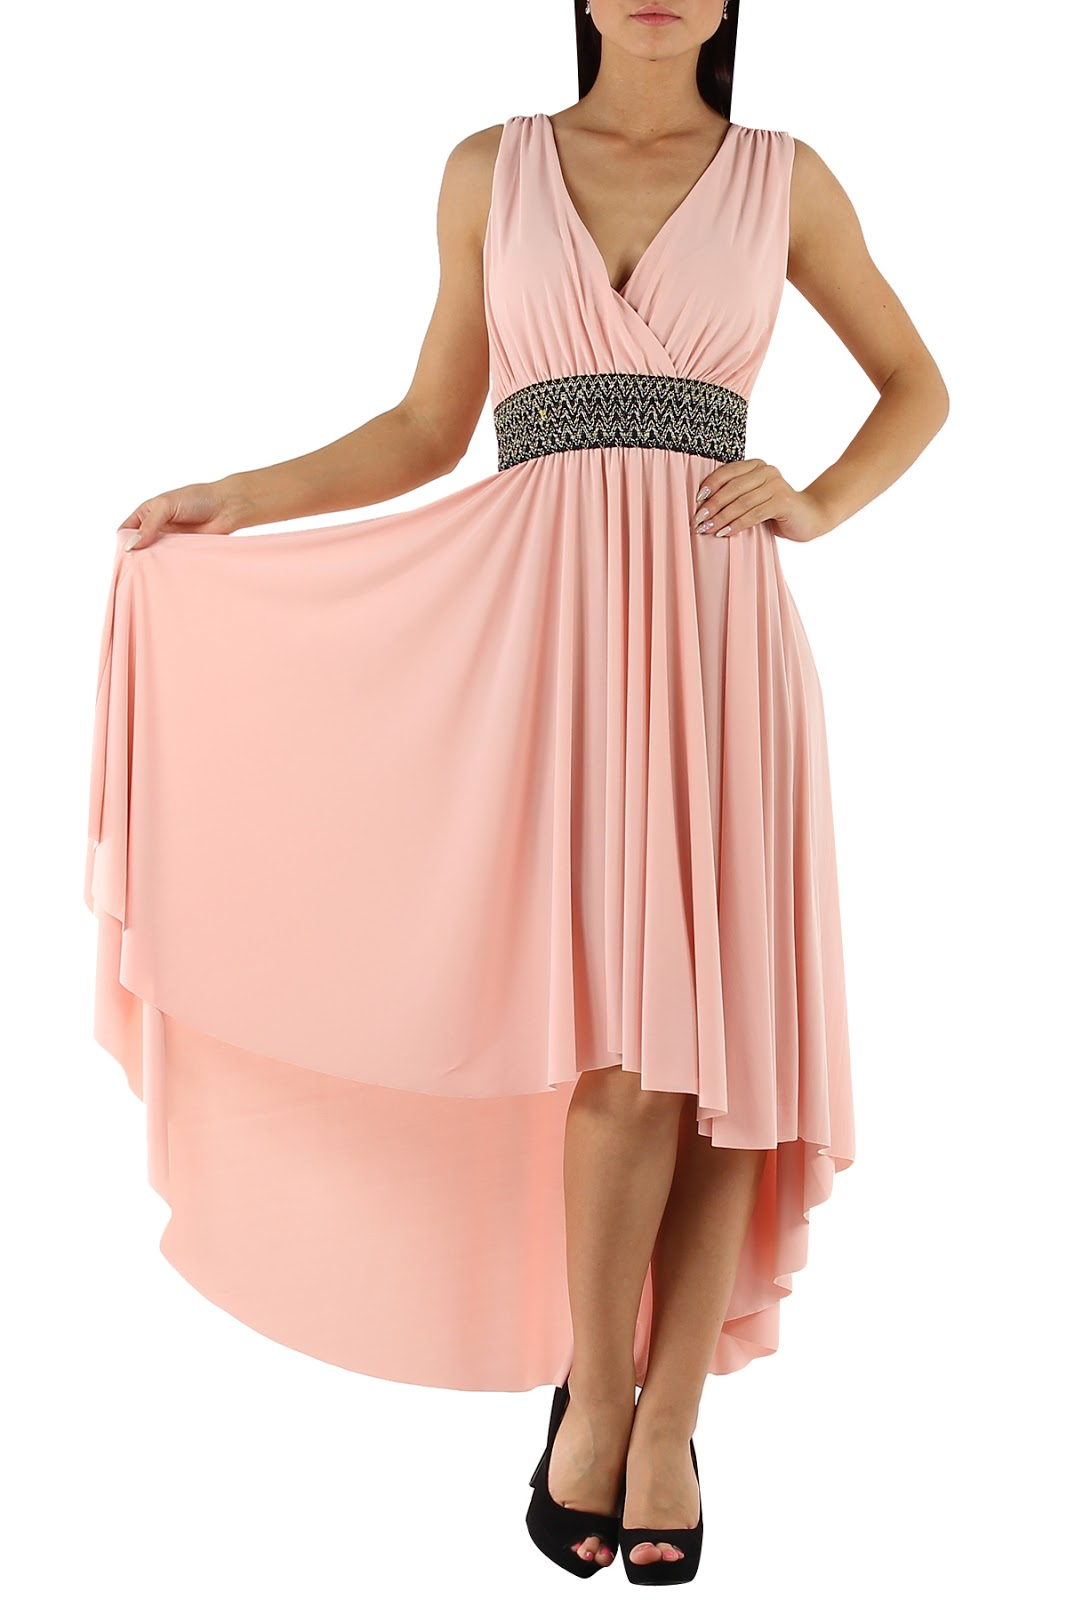 Beach Stuff Shop is your premiere discount online resource for women's swimwear, beachwear, summer dresses, beach dresses, cruise and resort wear fashions featuring stylish designer looks that are both fashionable, functional and comfortable for your cruise and beach vacation adventures and more!